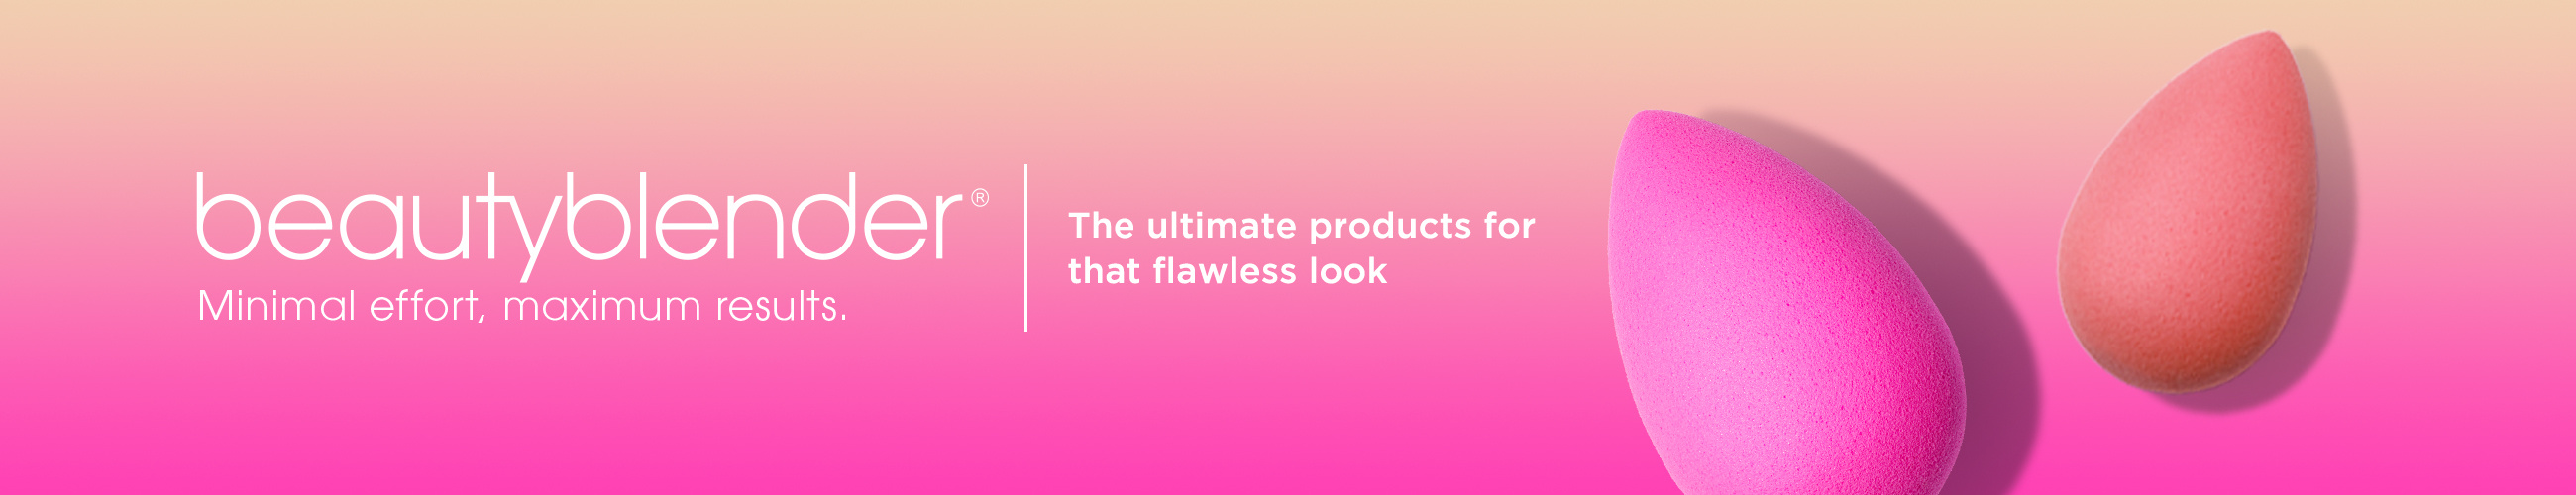 beautyblender — The ultimate products for that flawless look